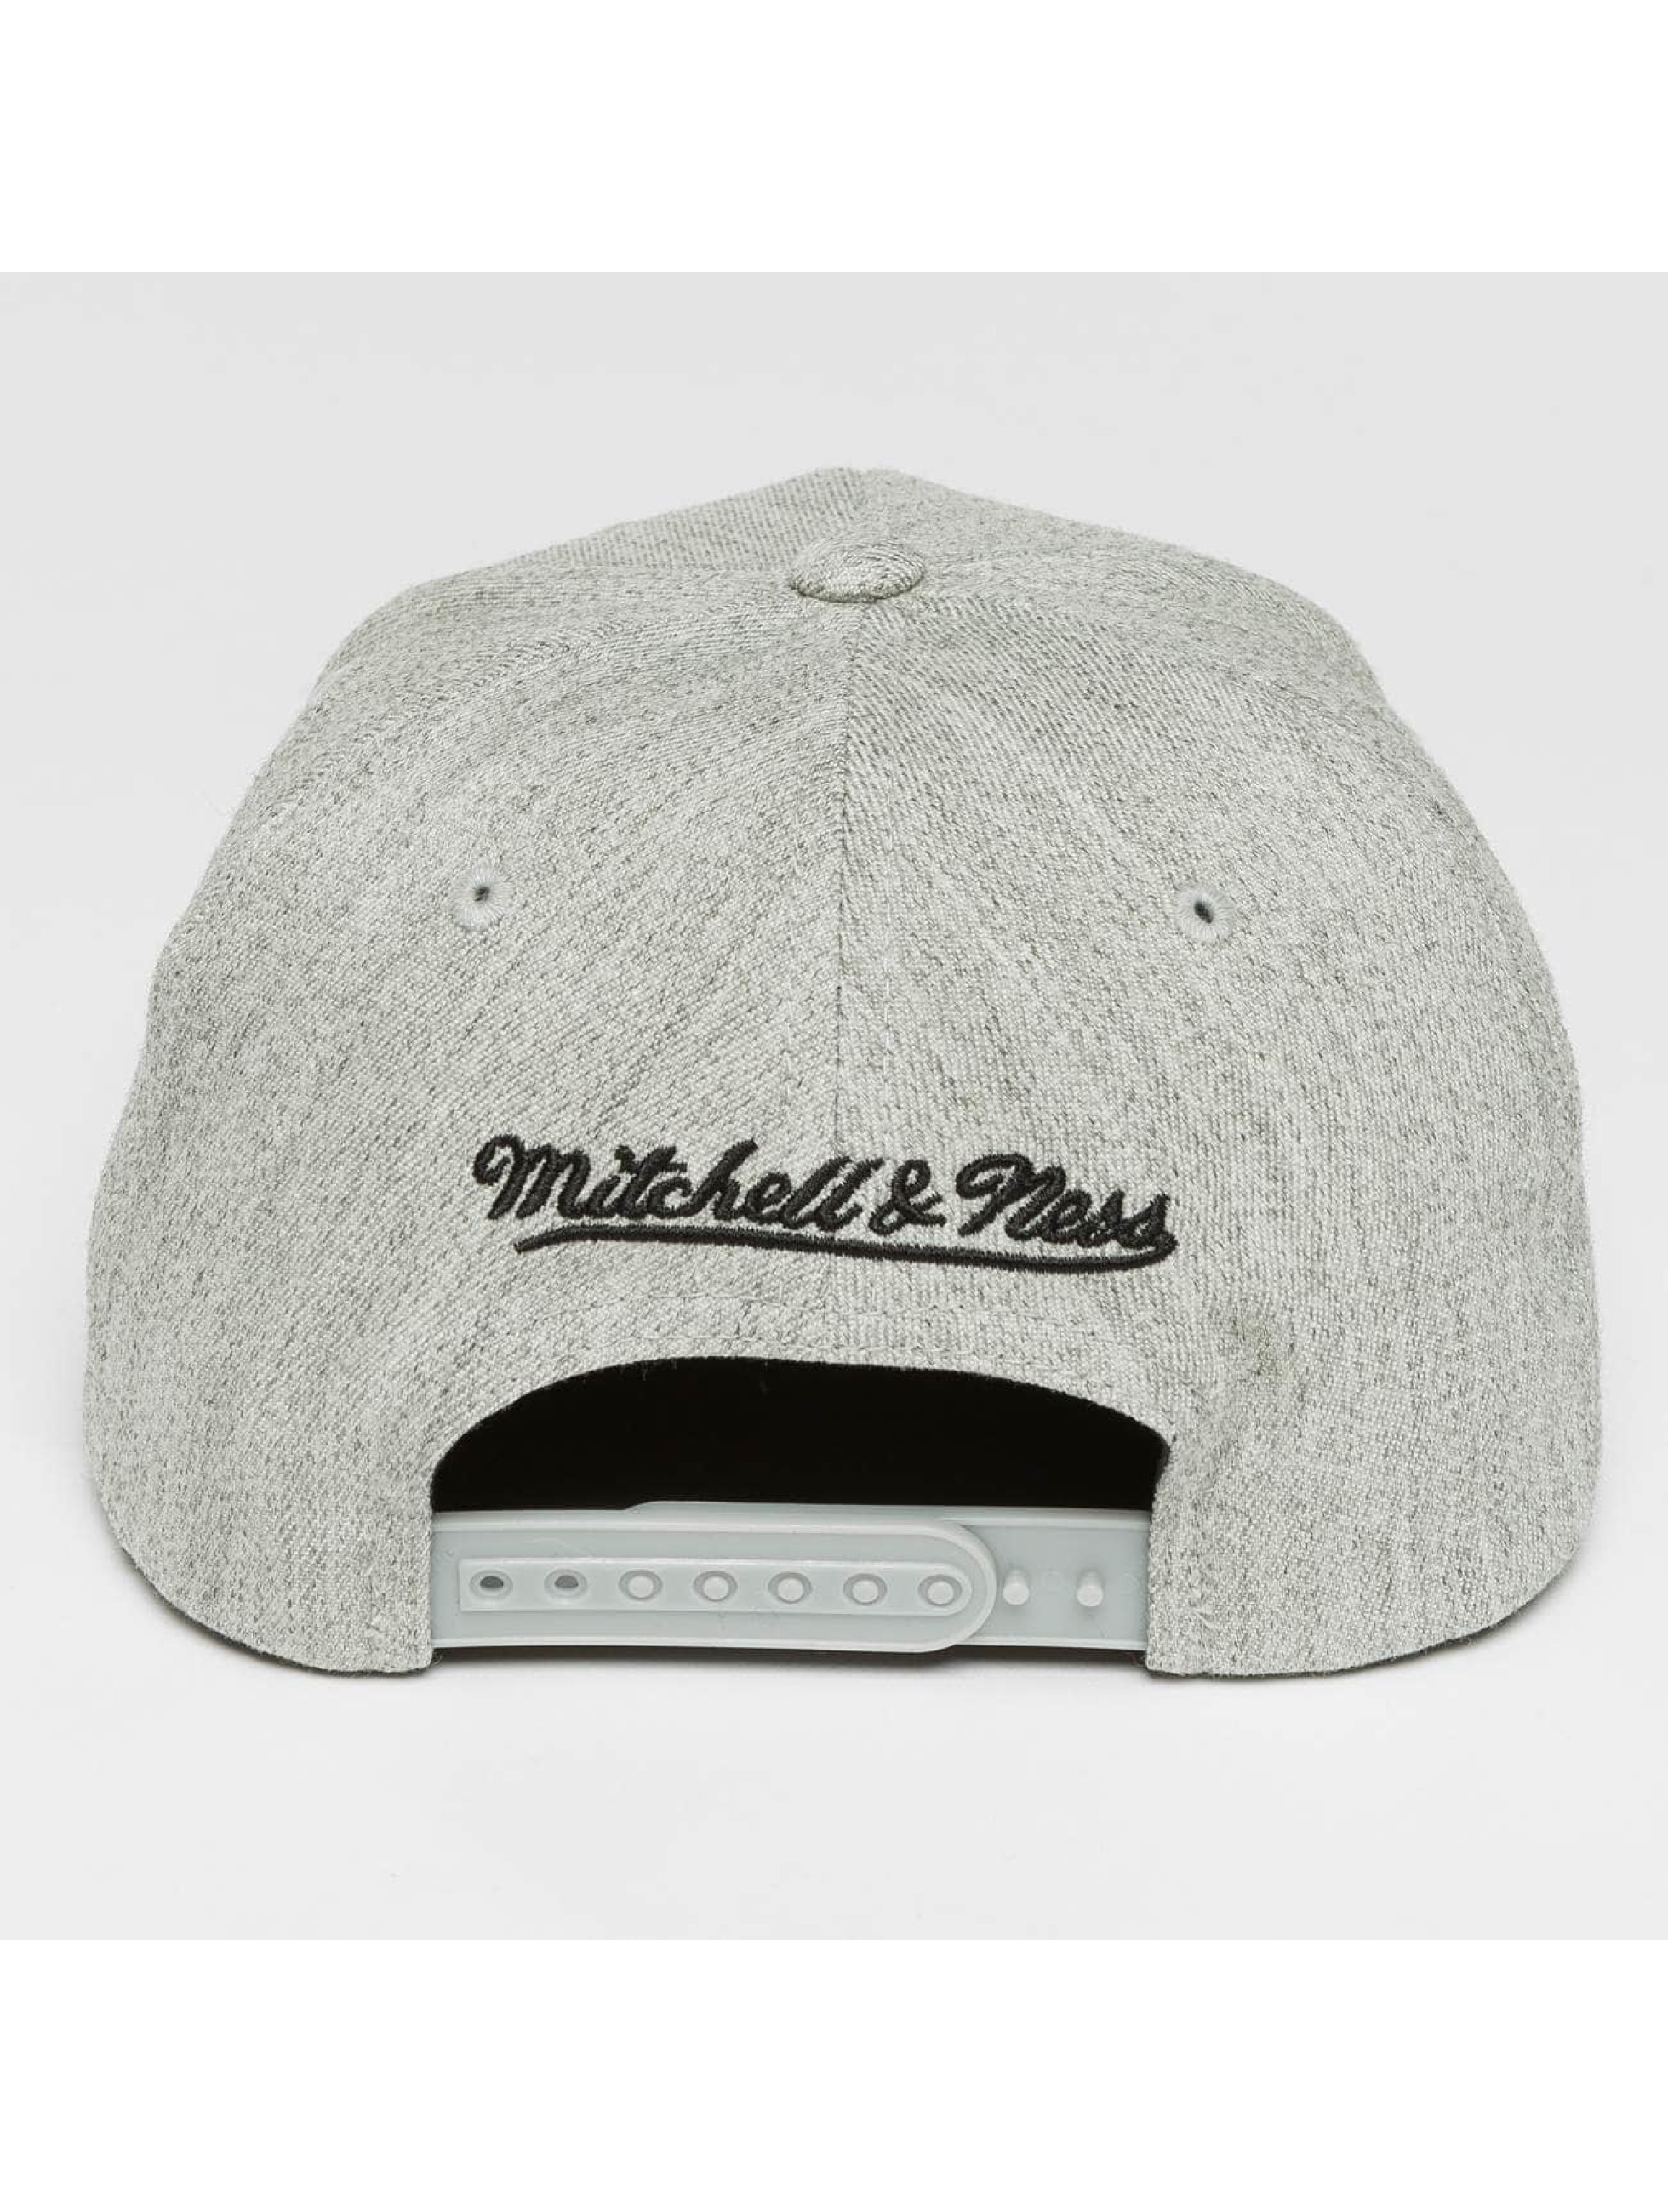 Mitchell & Ness Casquette Snapback & Strapback Blank Flat Peak 110 gris